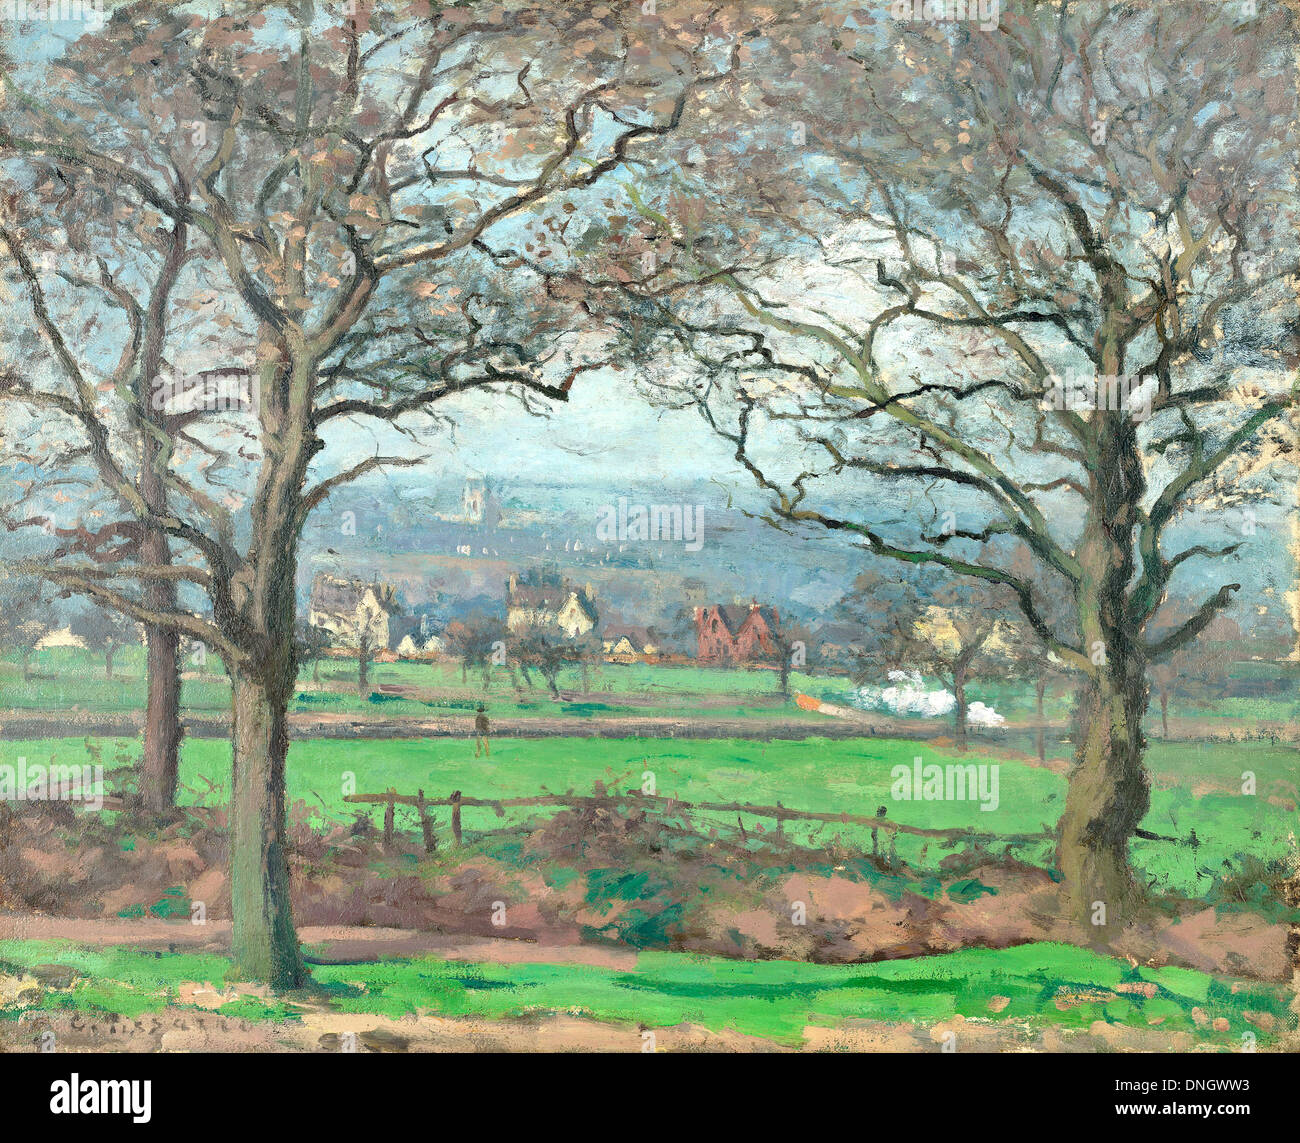 Camille Pissarro, Near Sydenham Hill 1871 Oil on canvas. Kimbell Art Museum, Fort Worth, Texas, USA. - Stock Image